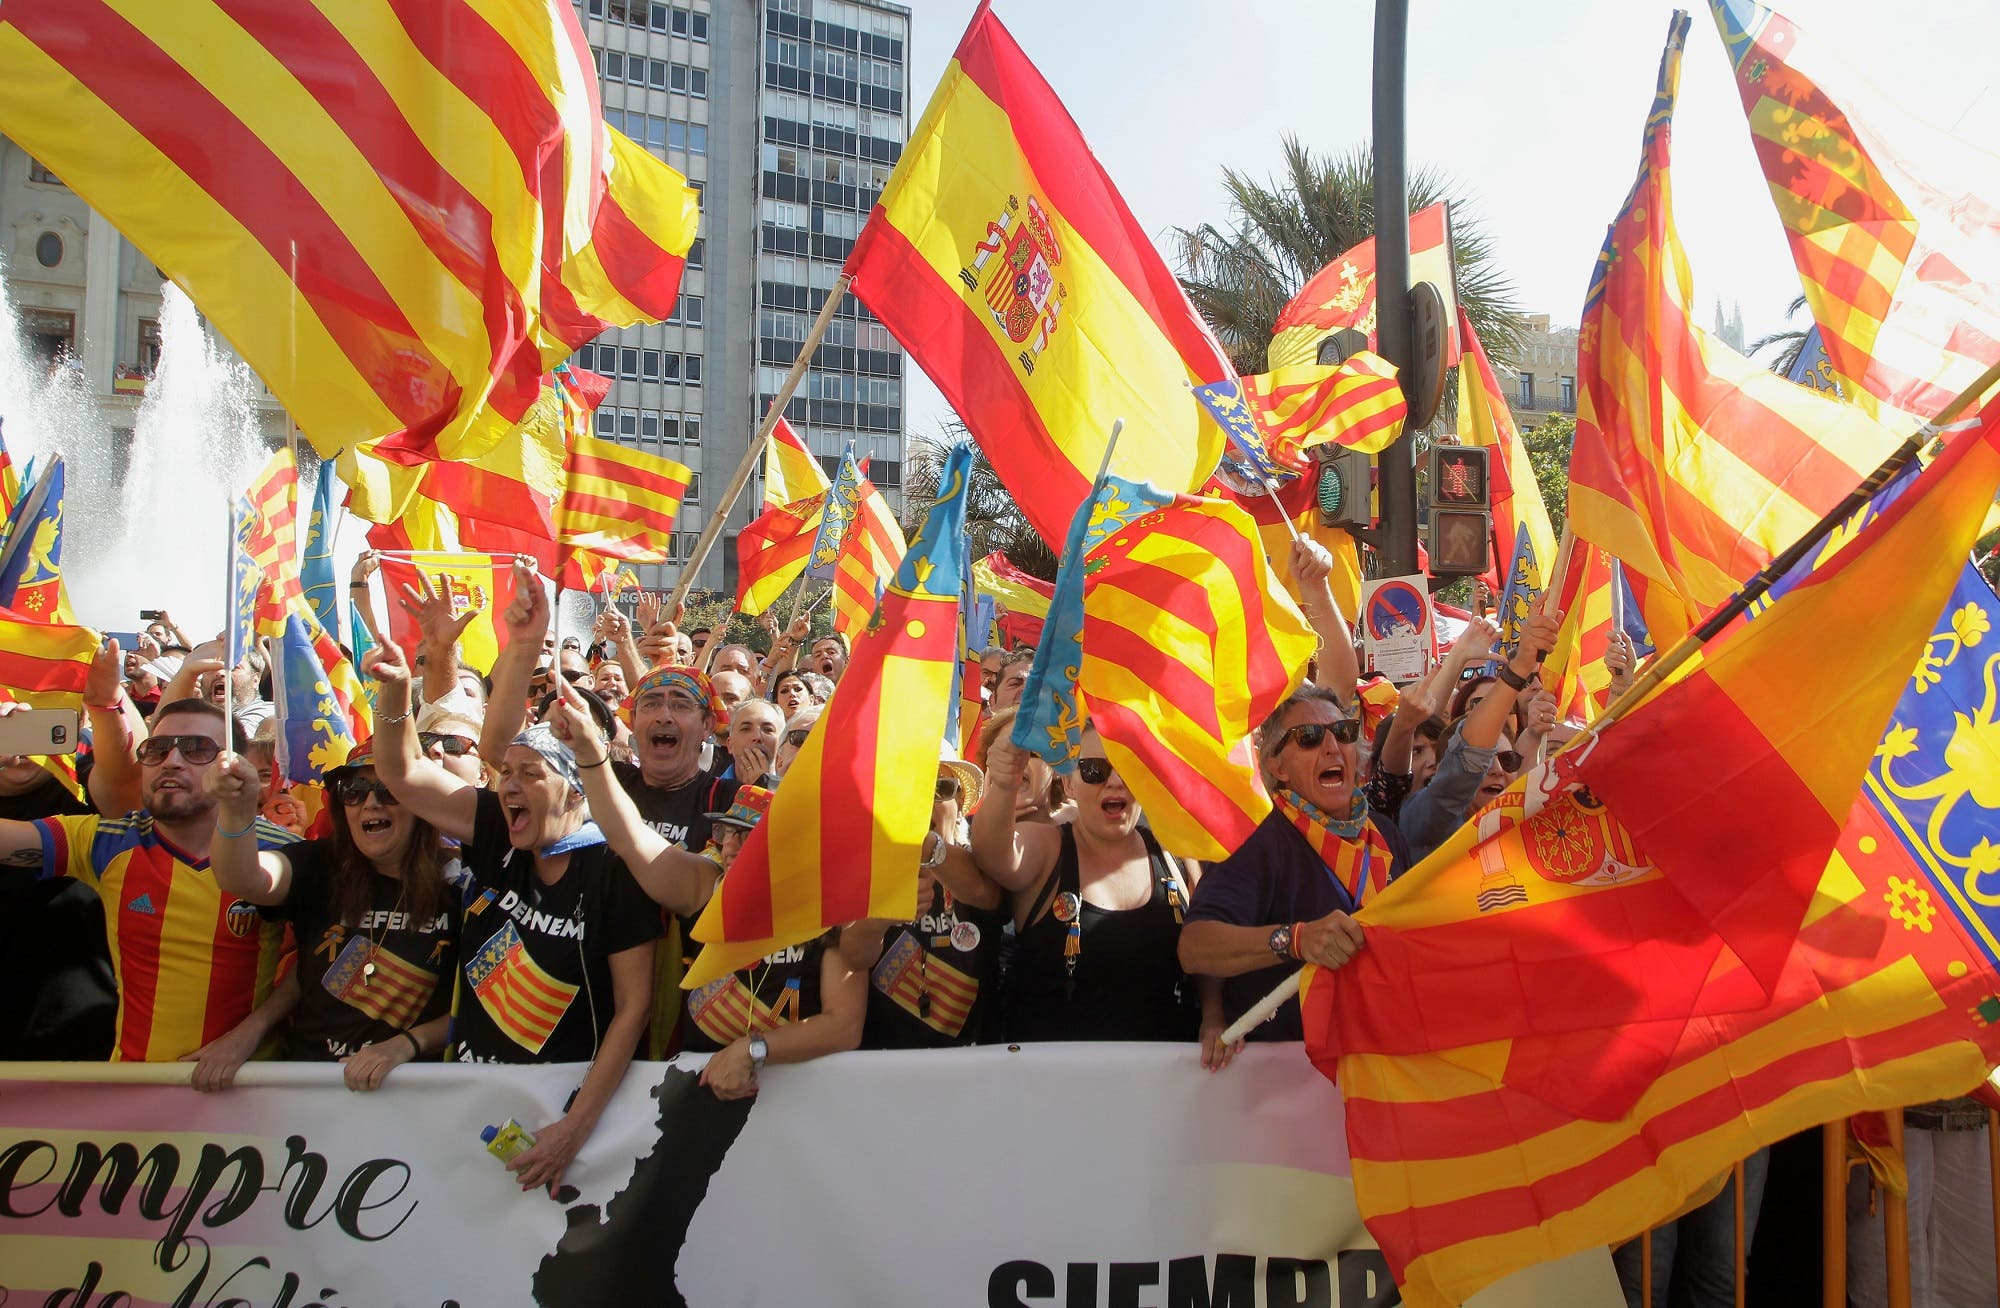 Right-wing demonstrators waving Spanish and Valencian flags insult local leftist politicians accusing them to sympathize with the Catalan separatist movement during the festivities of the regional day in Valencia, Spain October 9, 2017. (Reuters)